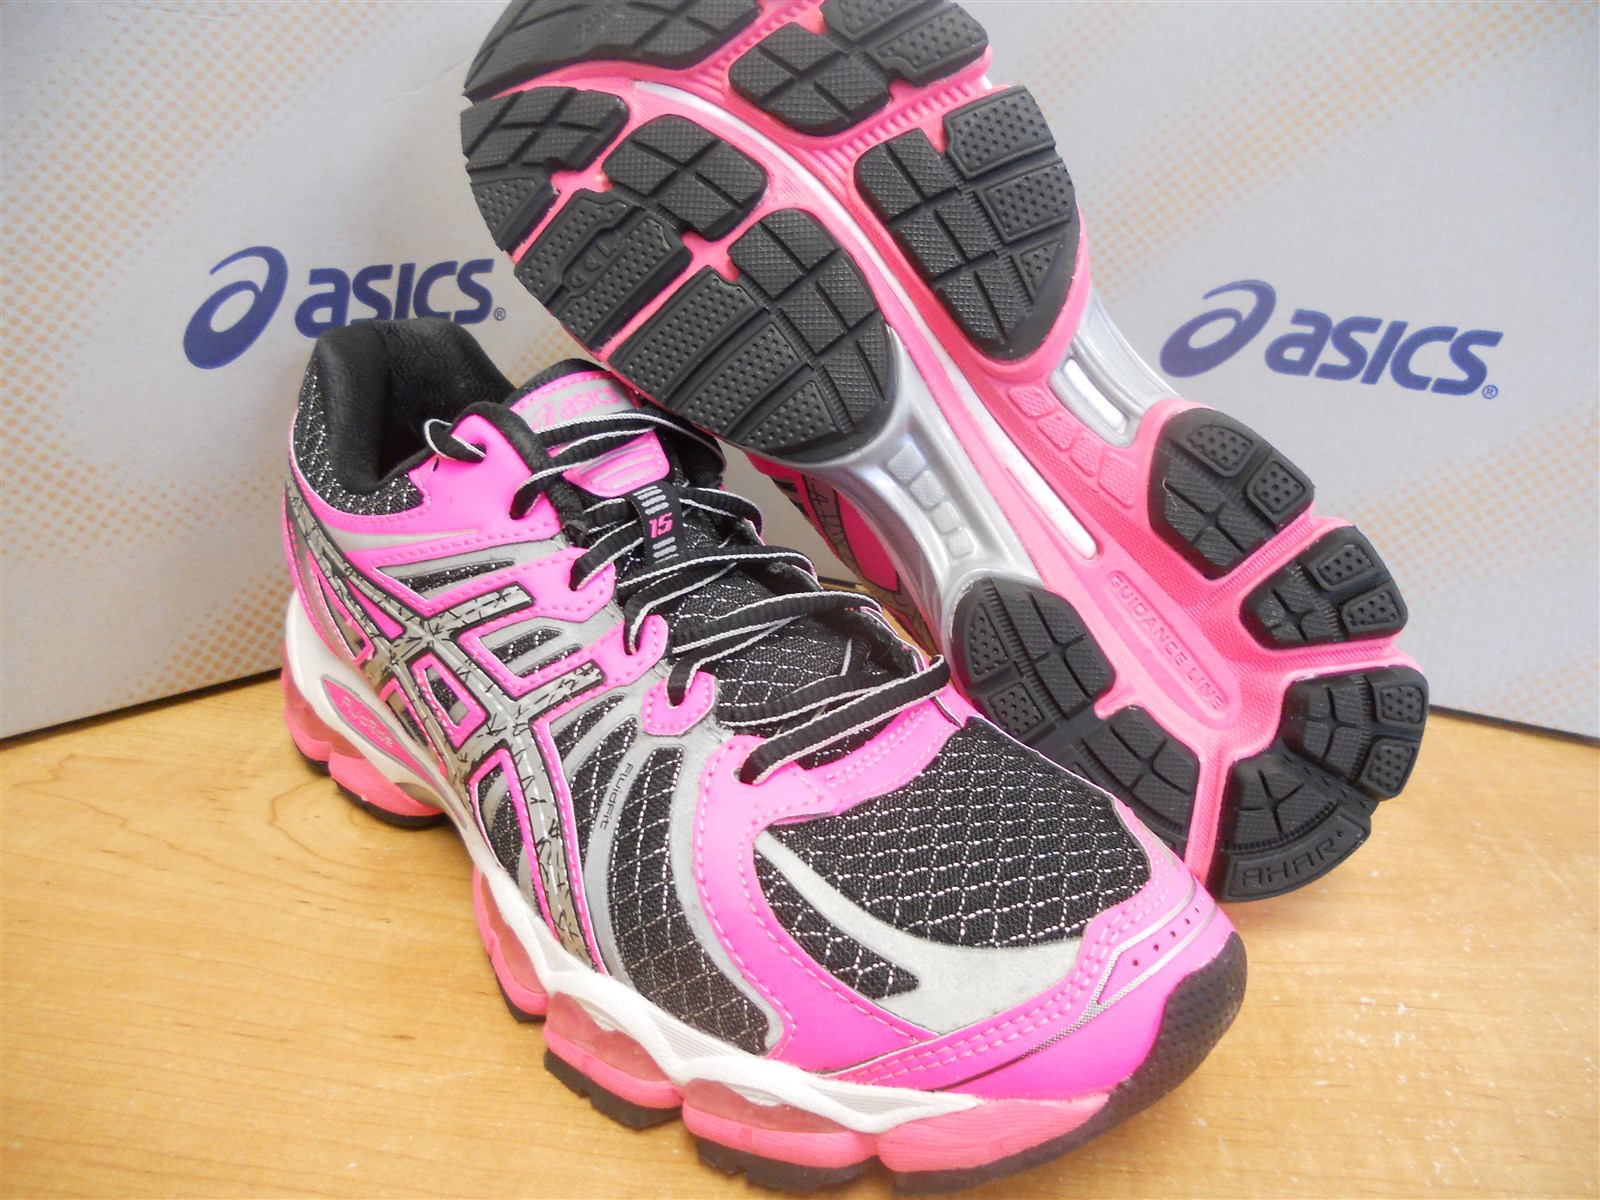 asics gel nimbus 15 lite-show womens running shoes reviews